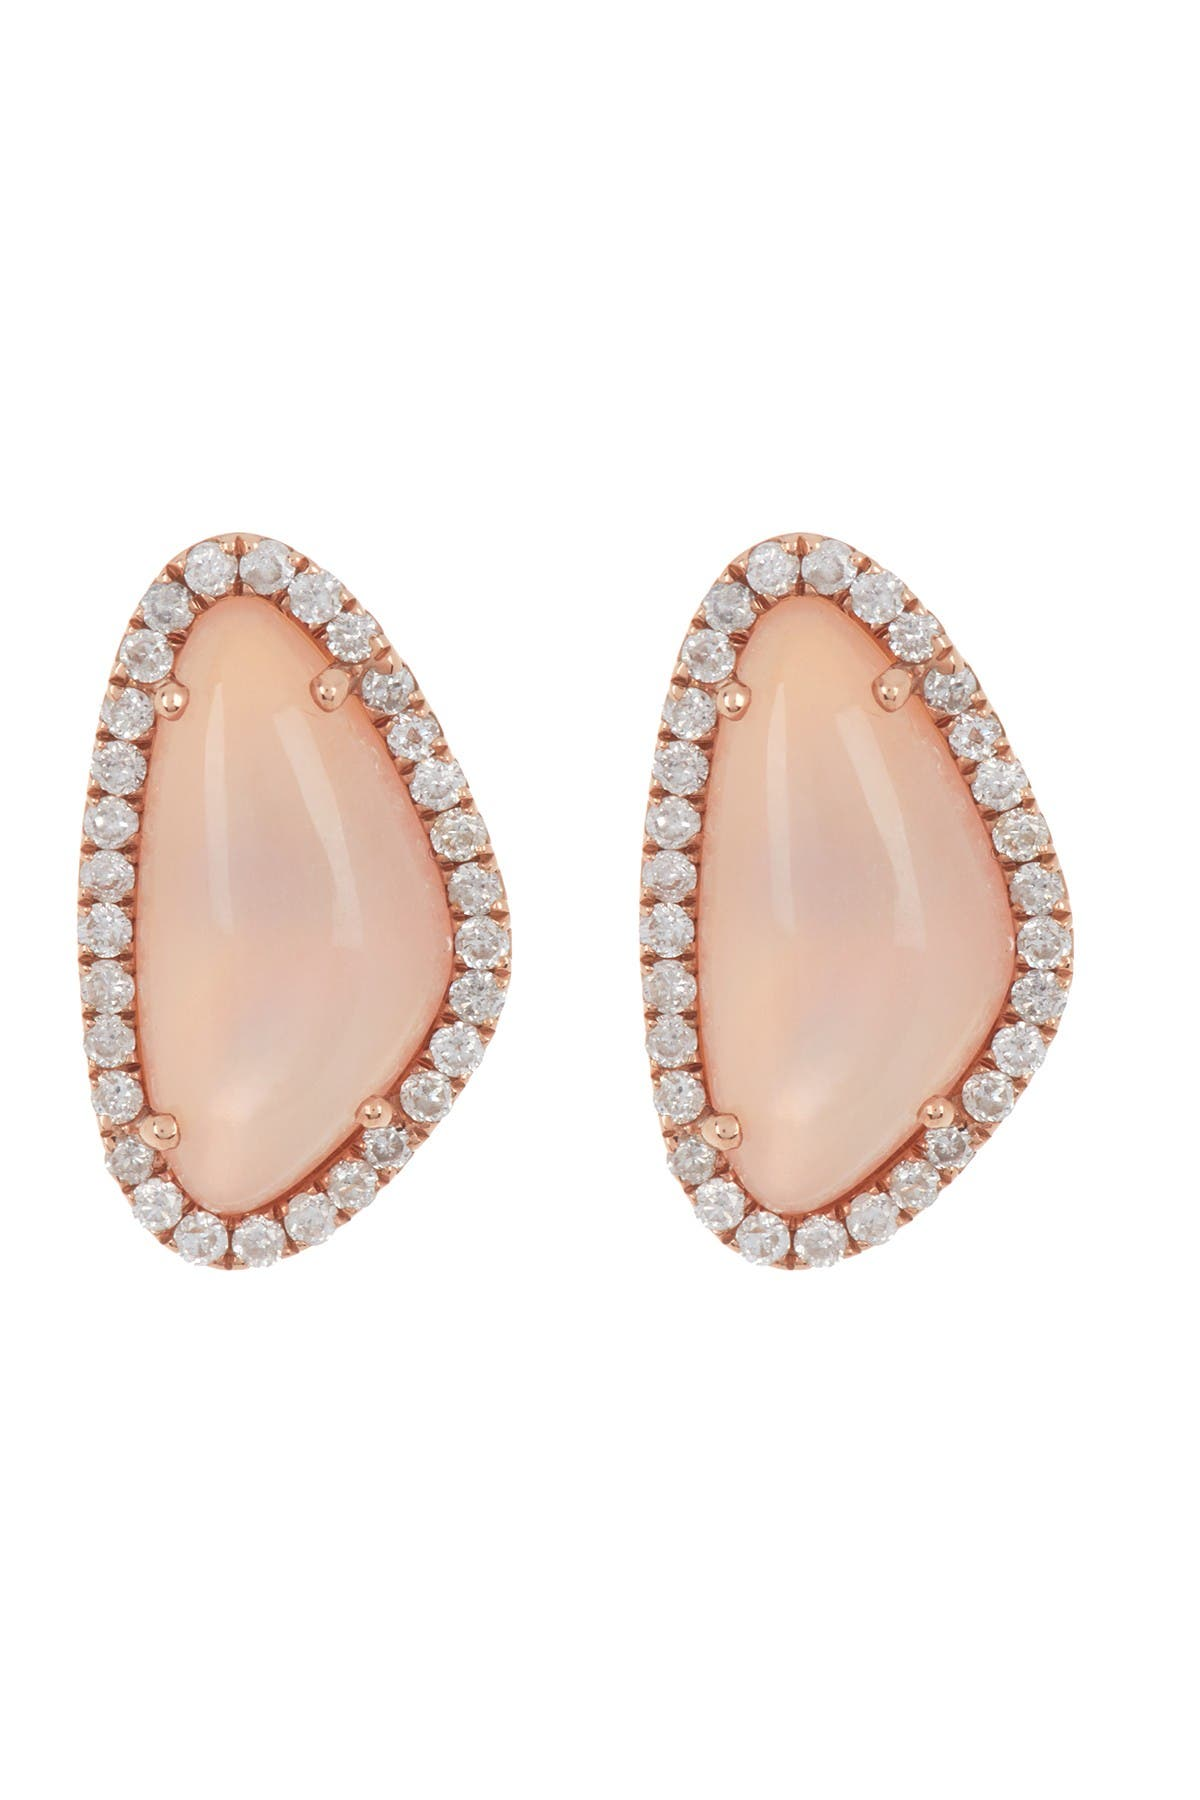 Image of Meira T 14K Rose Gold Rose Quartz & Diamond Stud Earrings